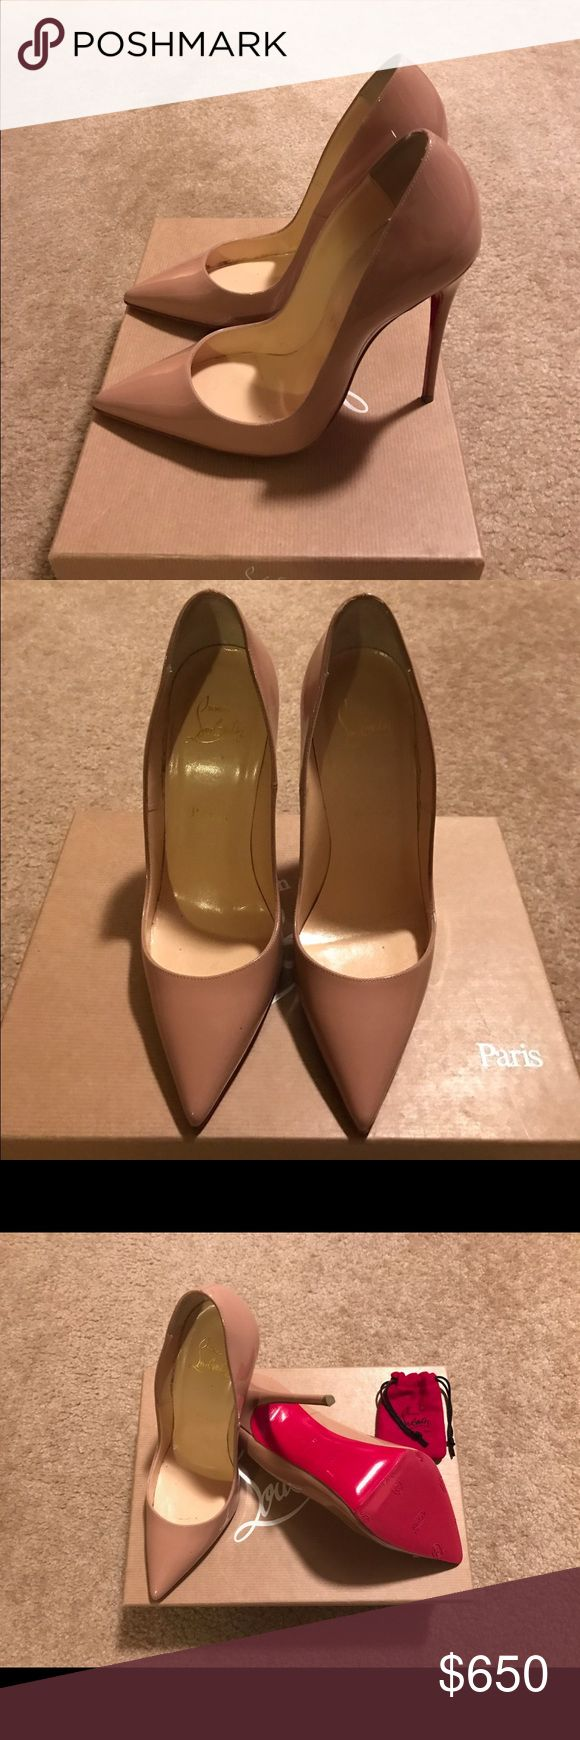 Christian Louboutin pumps Beautiful Christian Louboutin  pumps (worn 2 times) Christian Louboutin Shoes Heels